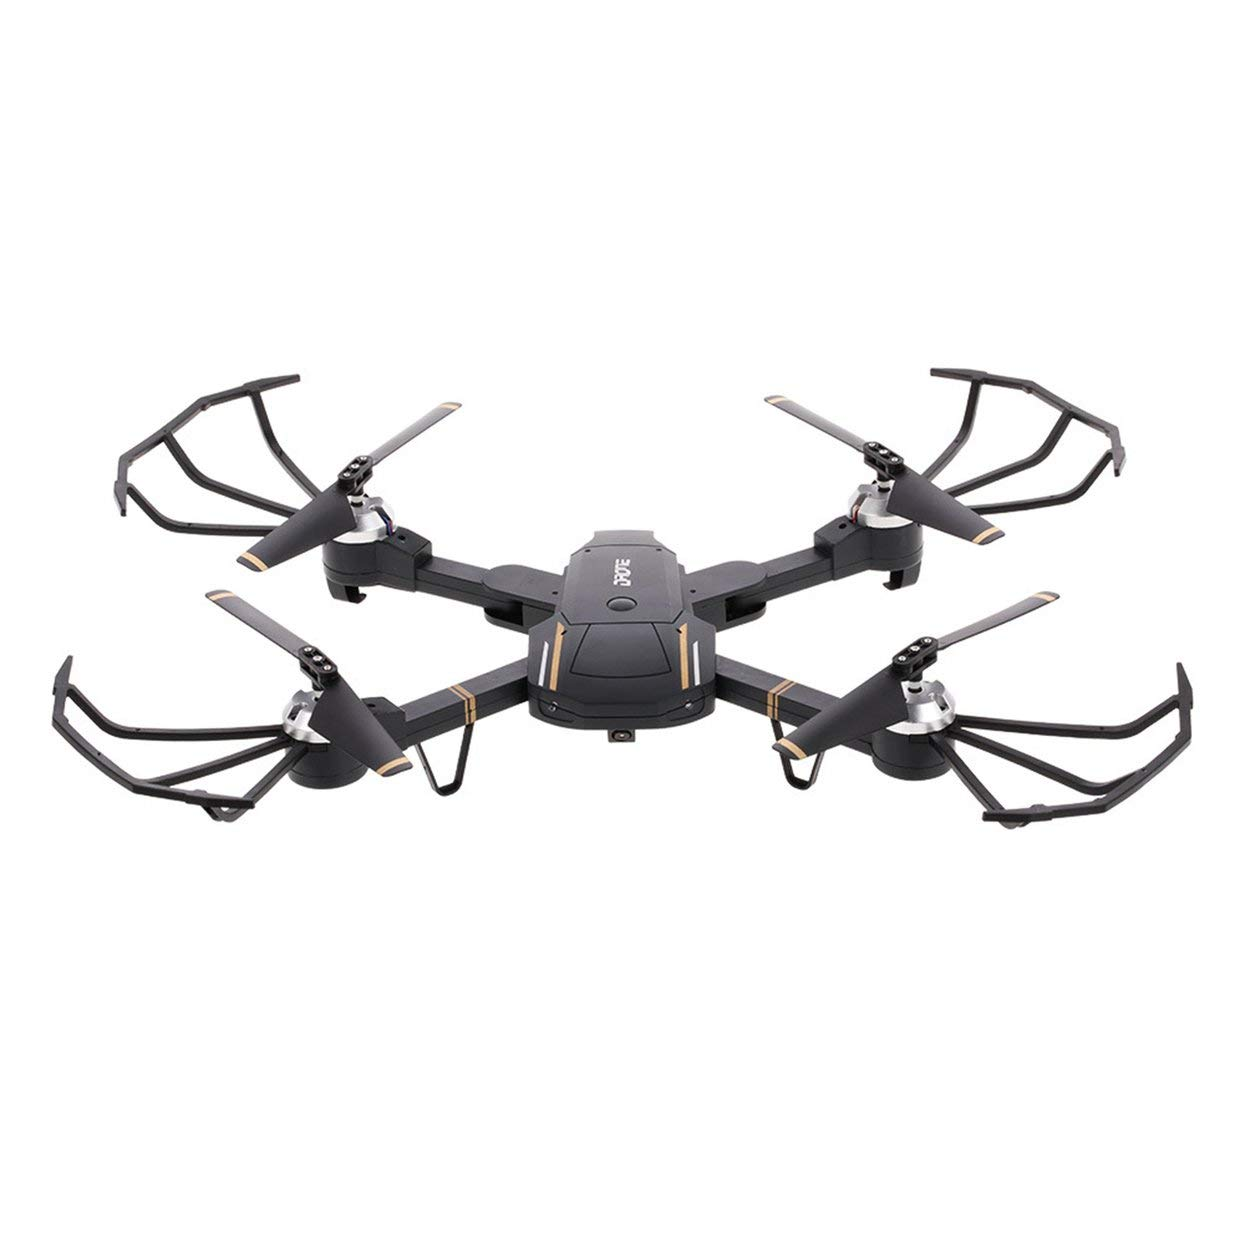 WiFi Control 4 Axis Drone 0.3MP / 2MP Hovering Racing Hubschrauber Drone Hovering Racing Hubschrauber RC Drone Spielzeug